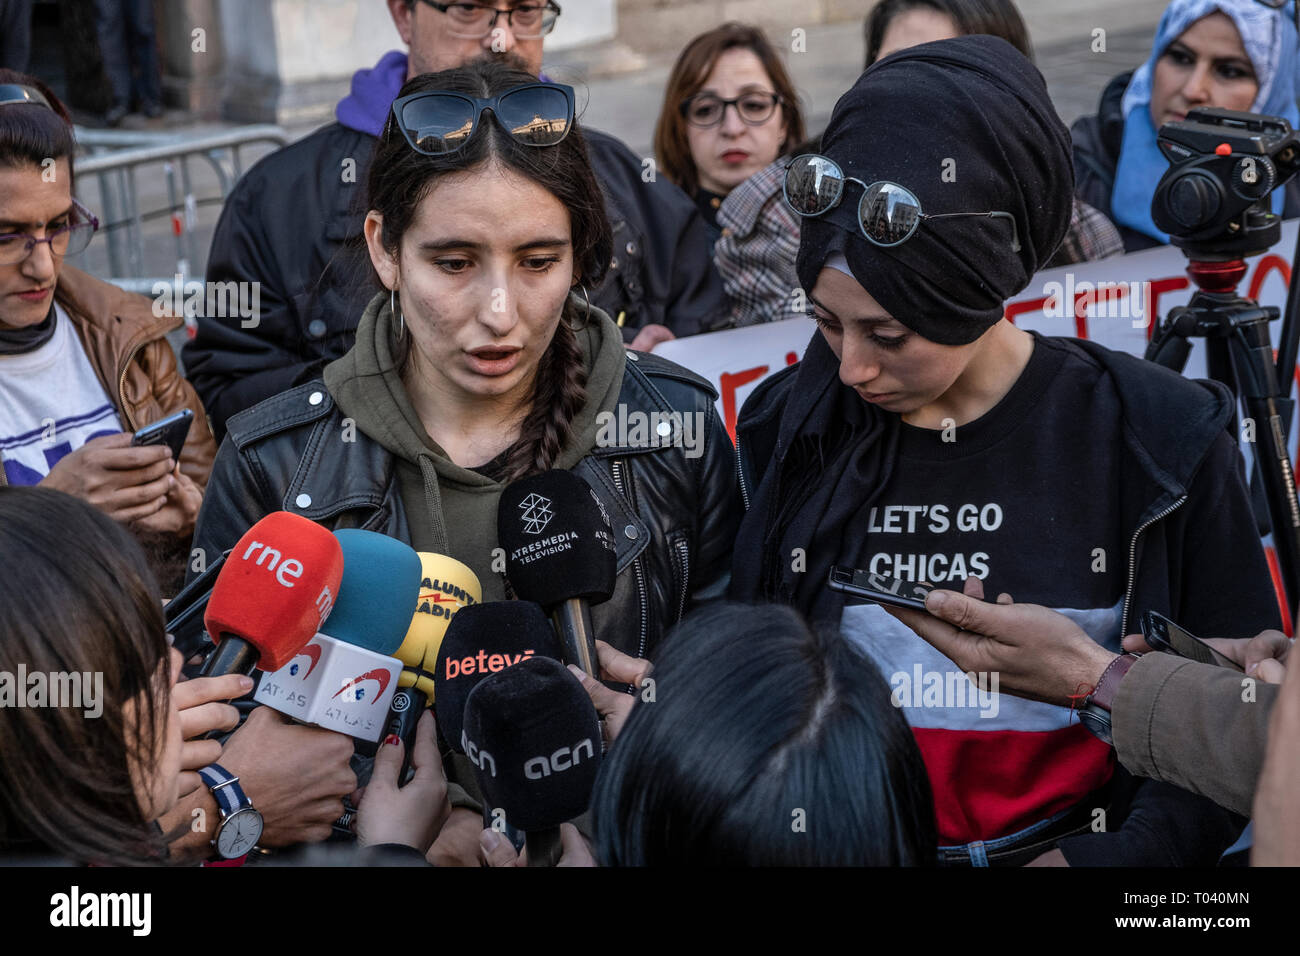 Spokespeople of young migrants are seen at a press conference. Around 300 people have gather to condemn the racism and discrimination after a racist attack carried out to a house of a young migrant after a fight between young migrants and young residents in Castelldefels area in Barcelona. - Stock Image